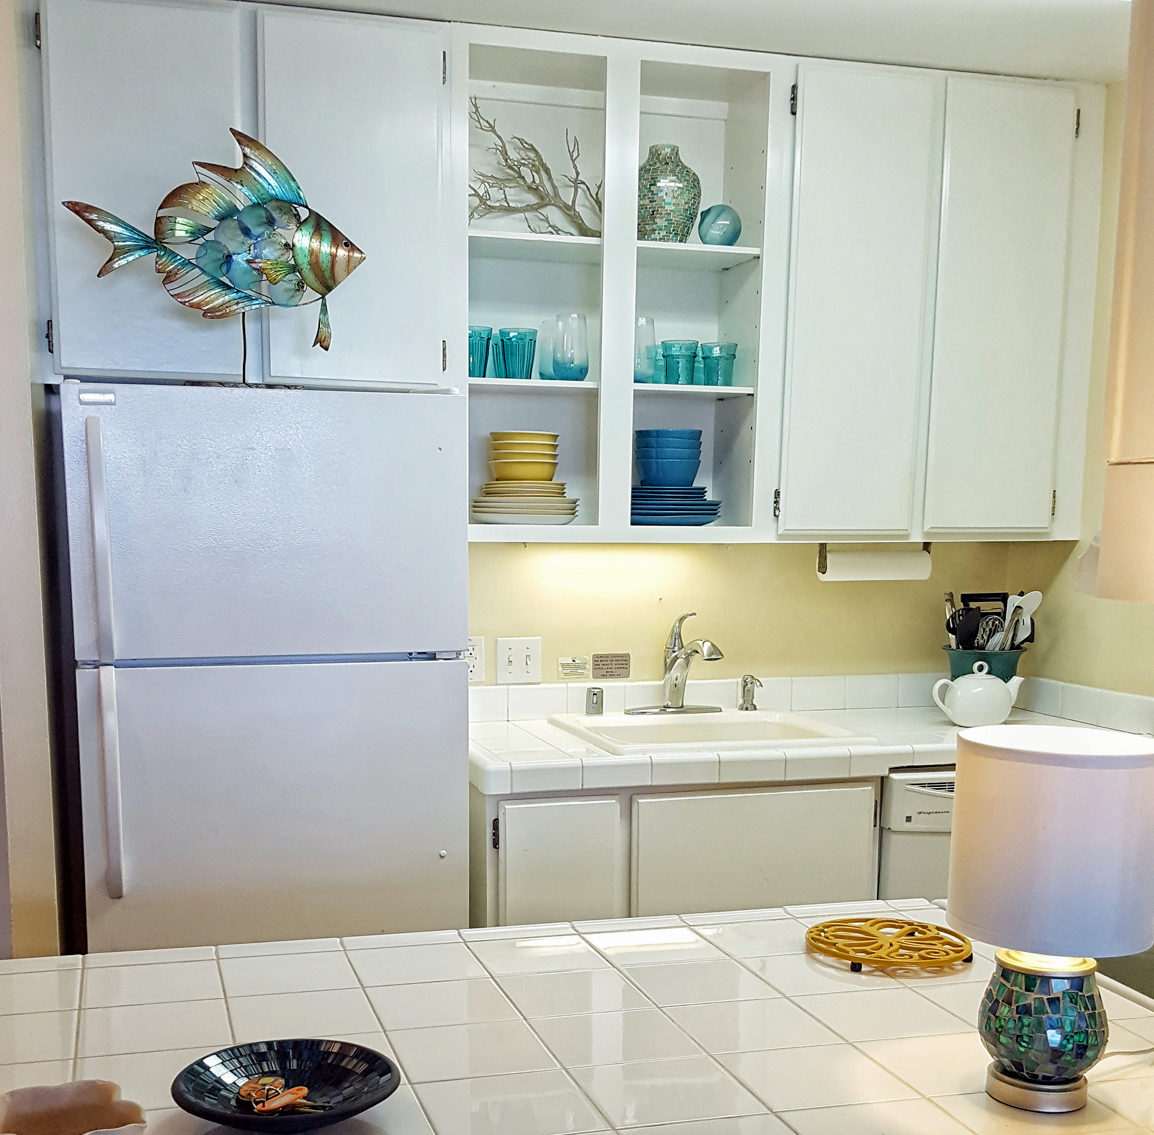 Updated kitchen with everything a cook needs for a quick meal or entertaining.